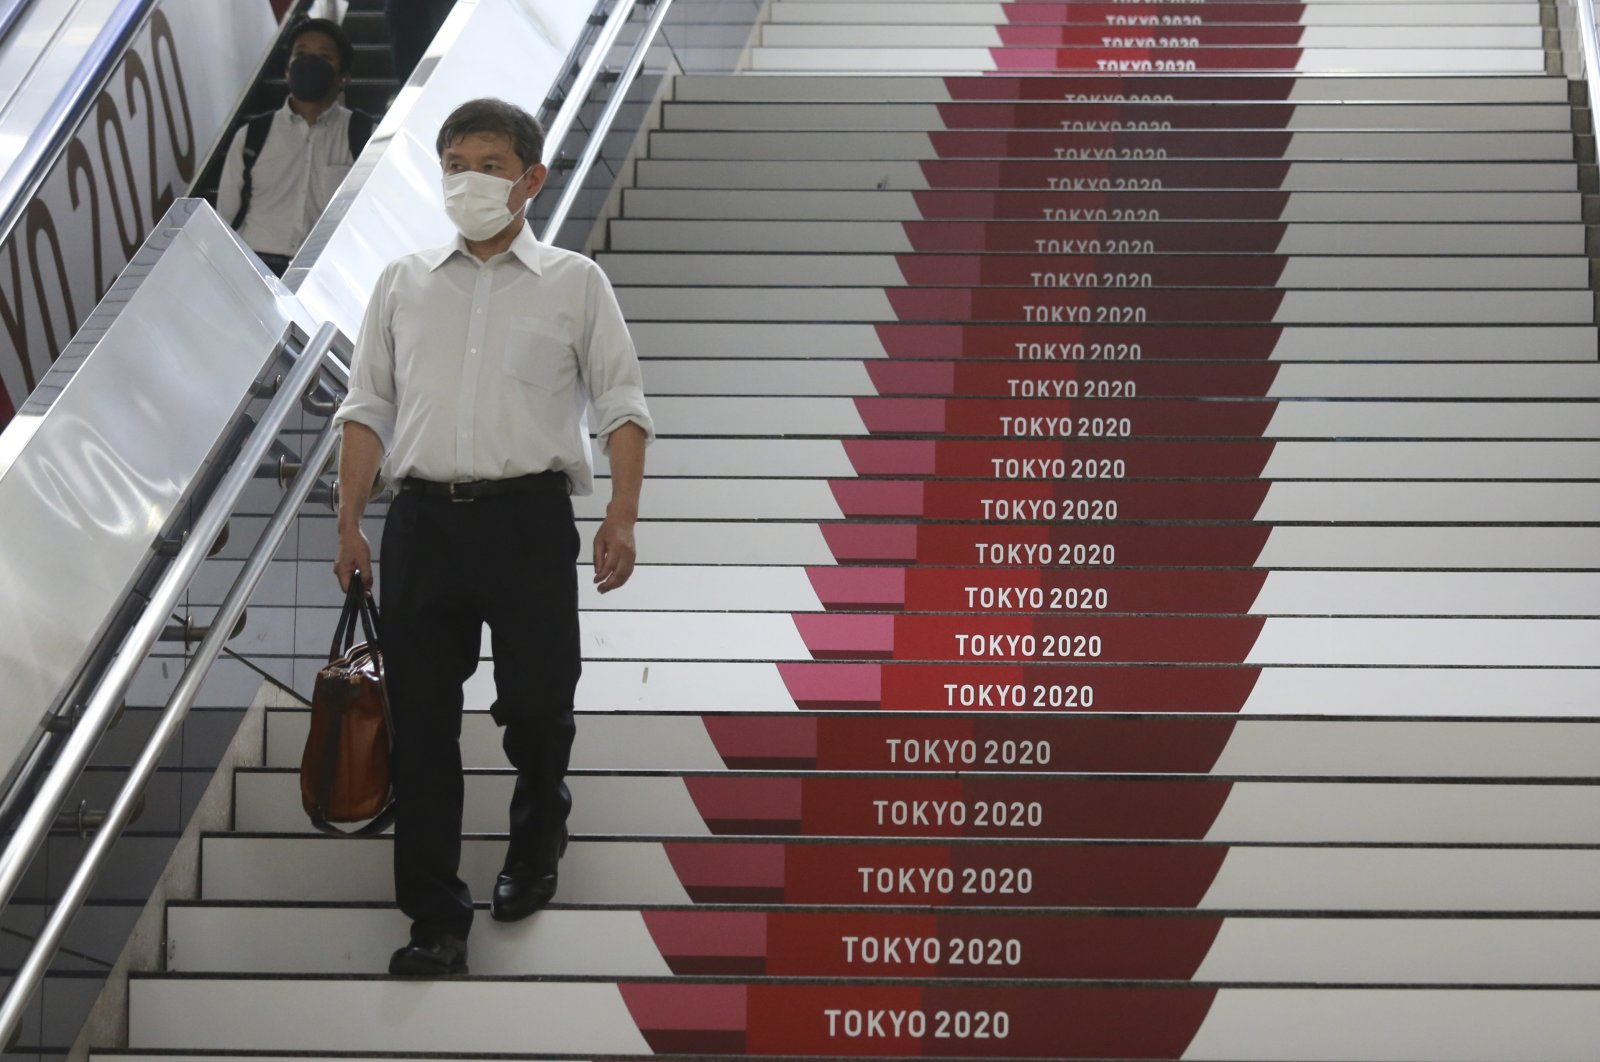 A man wearing a face mask goes down a flight of stairs showing Tokyo 2020 banners, Tokyo, July 6, 2021. (AP Photo)